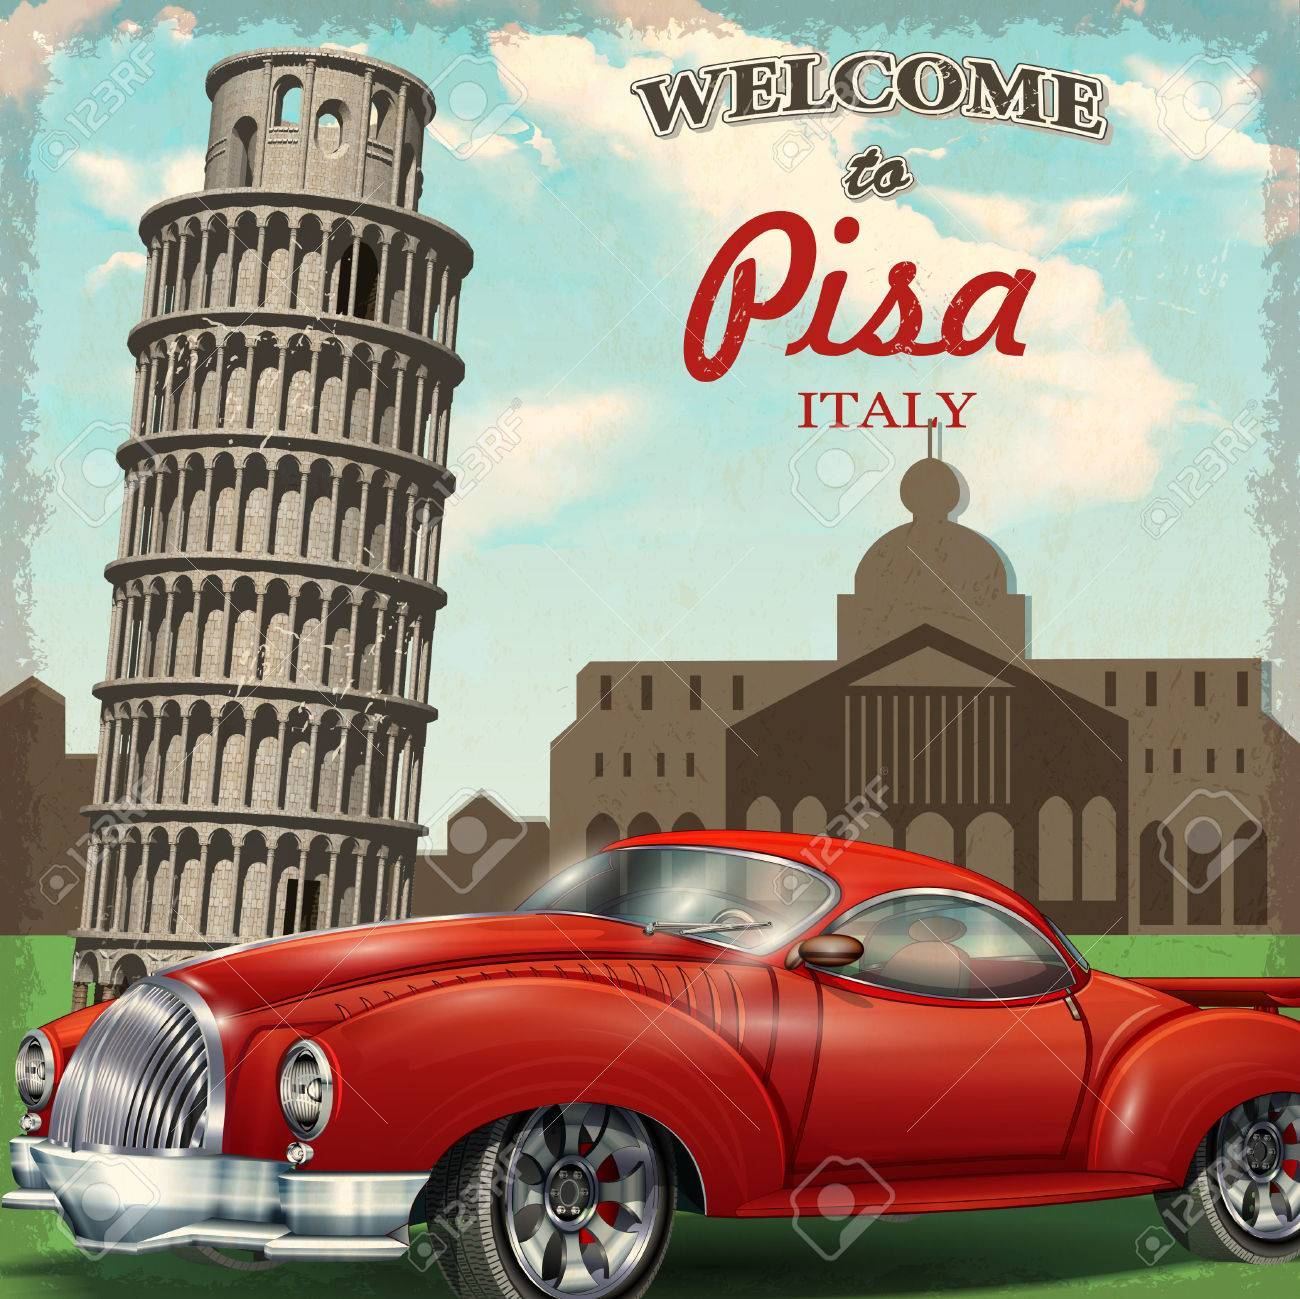 Welcome to Pisa retro poster. - 69427022